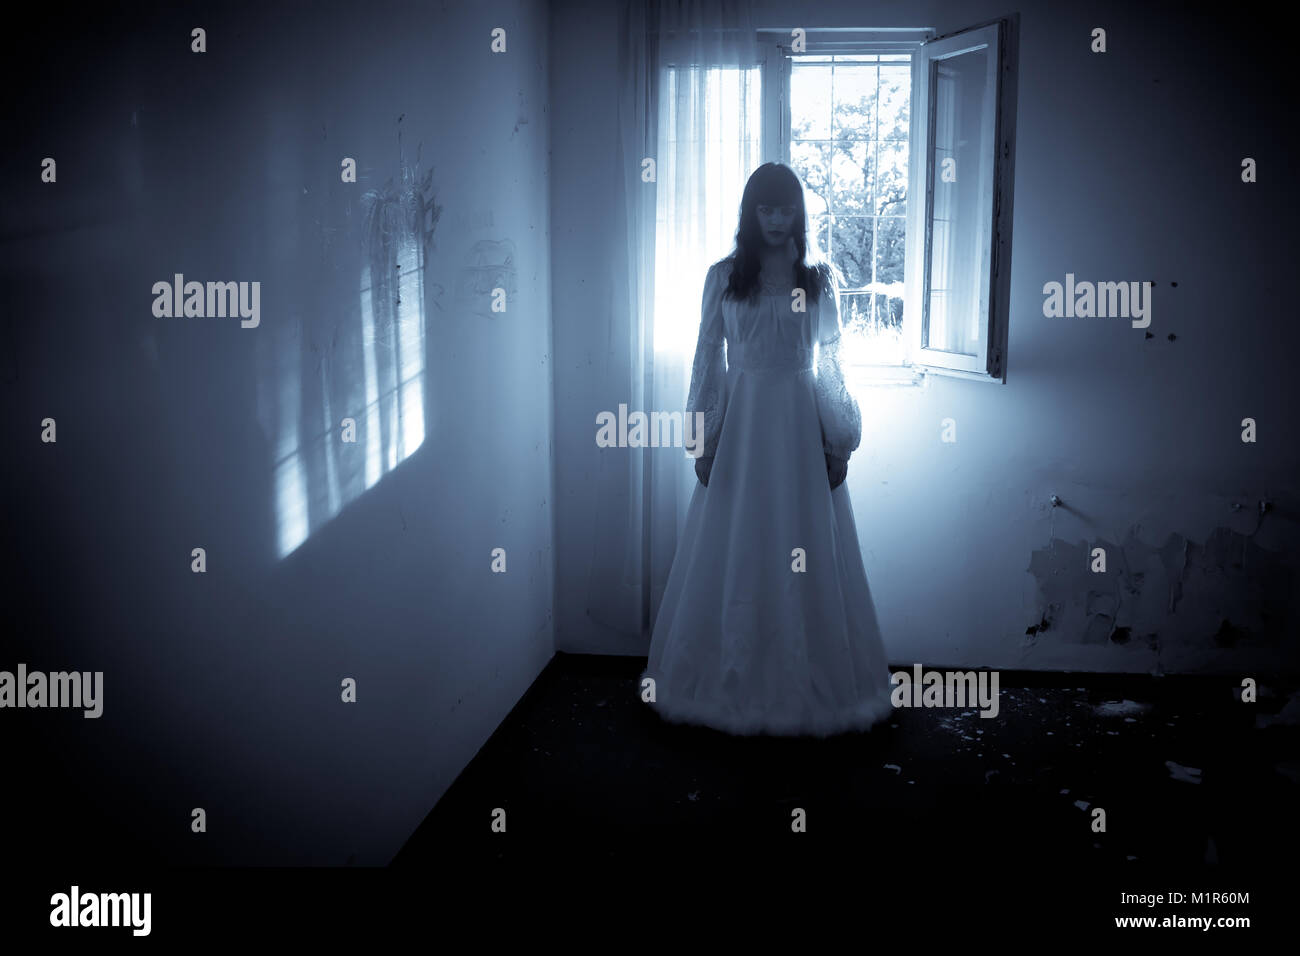 Horror Scene of a Creepy Woman in the Wedding Dress - Stock Image